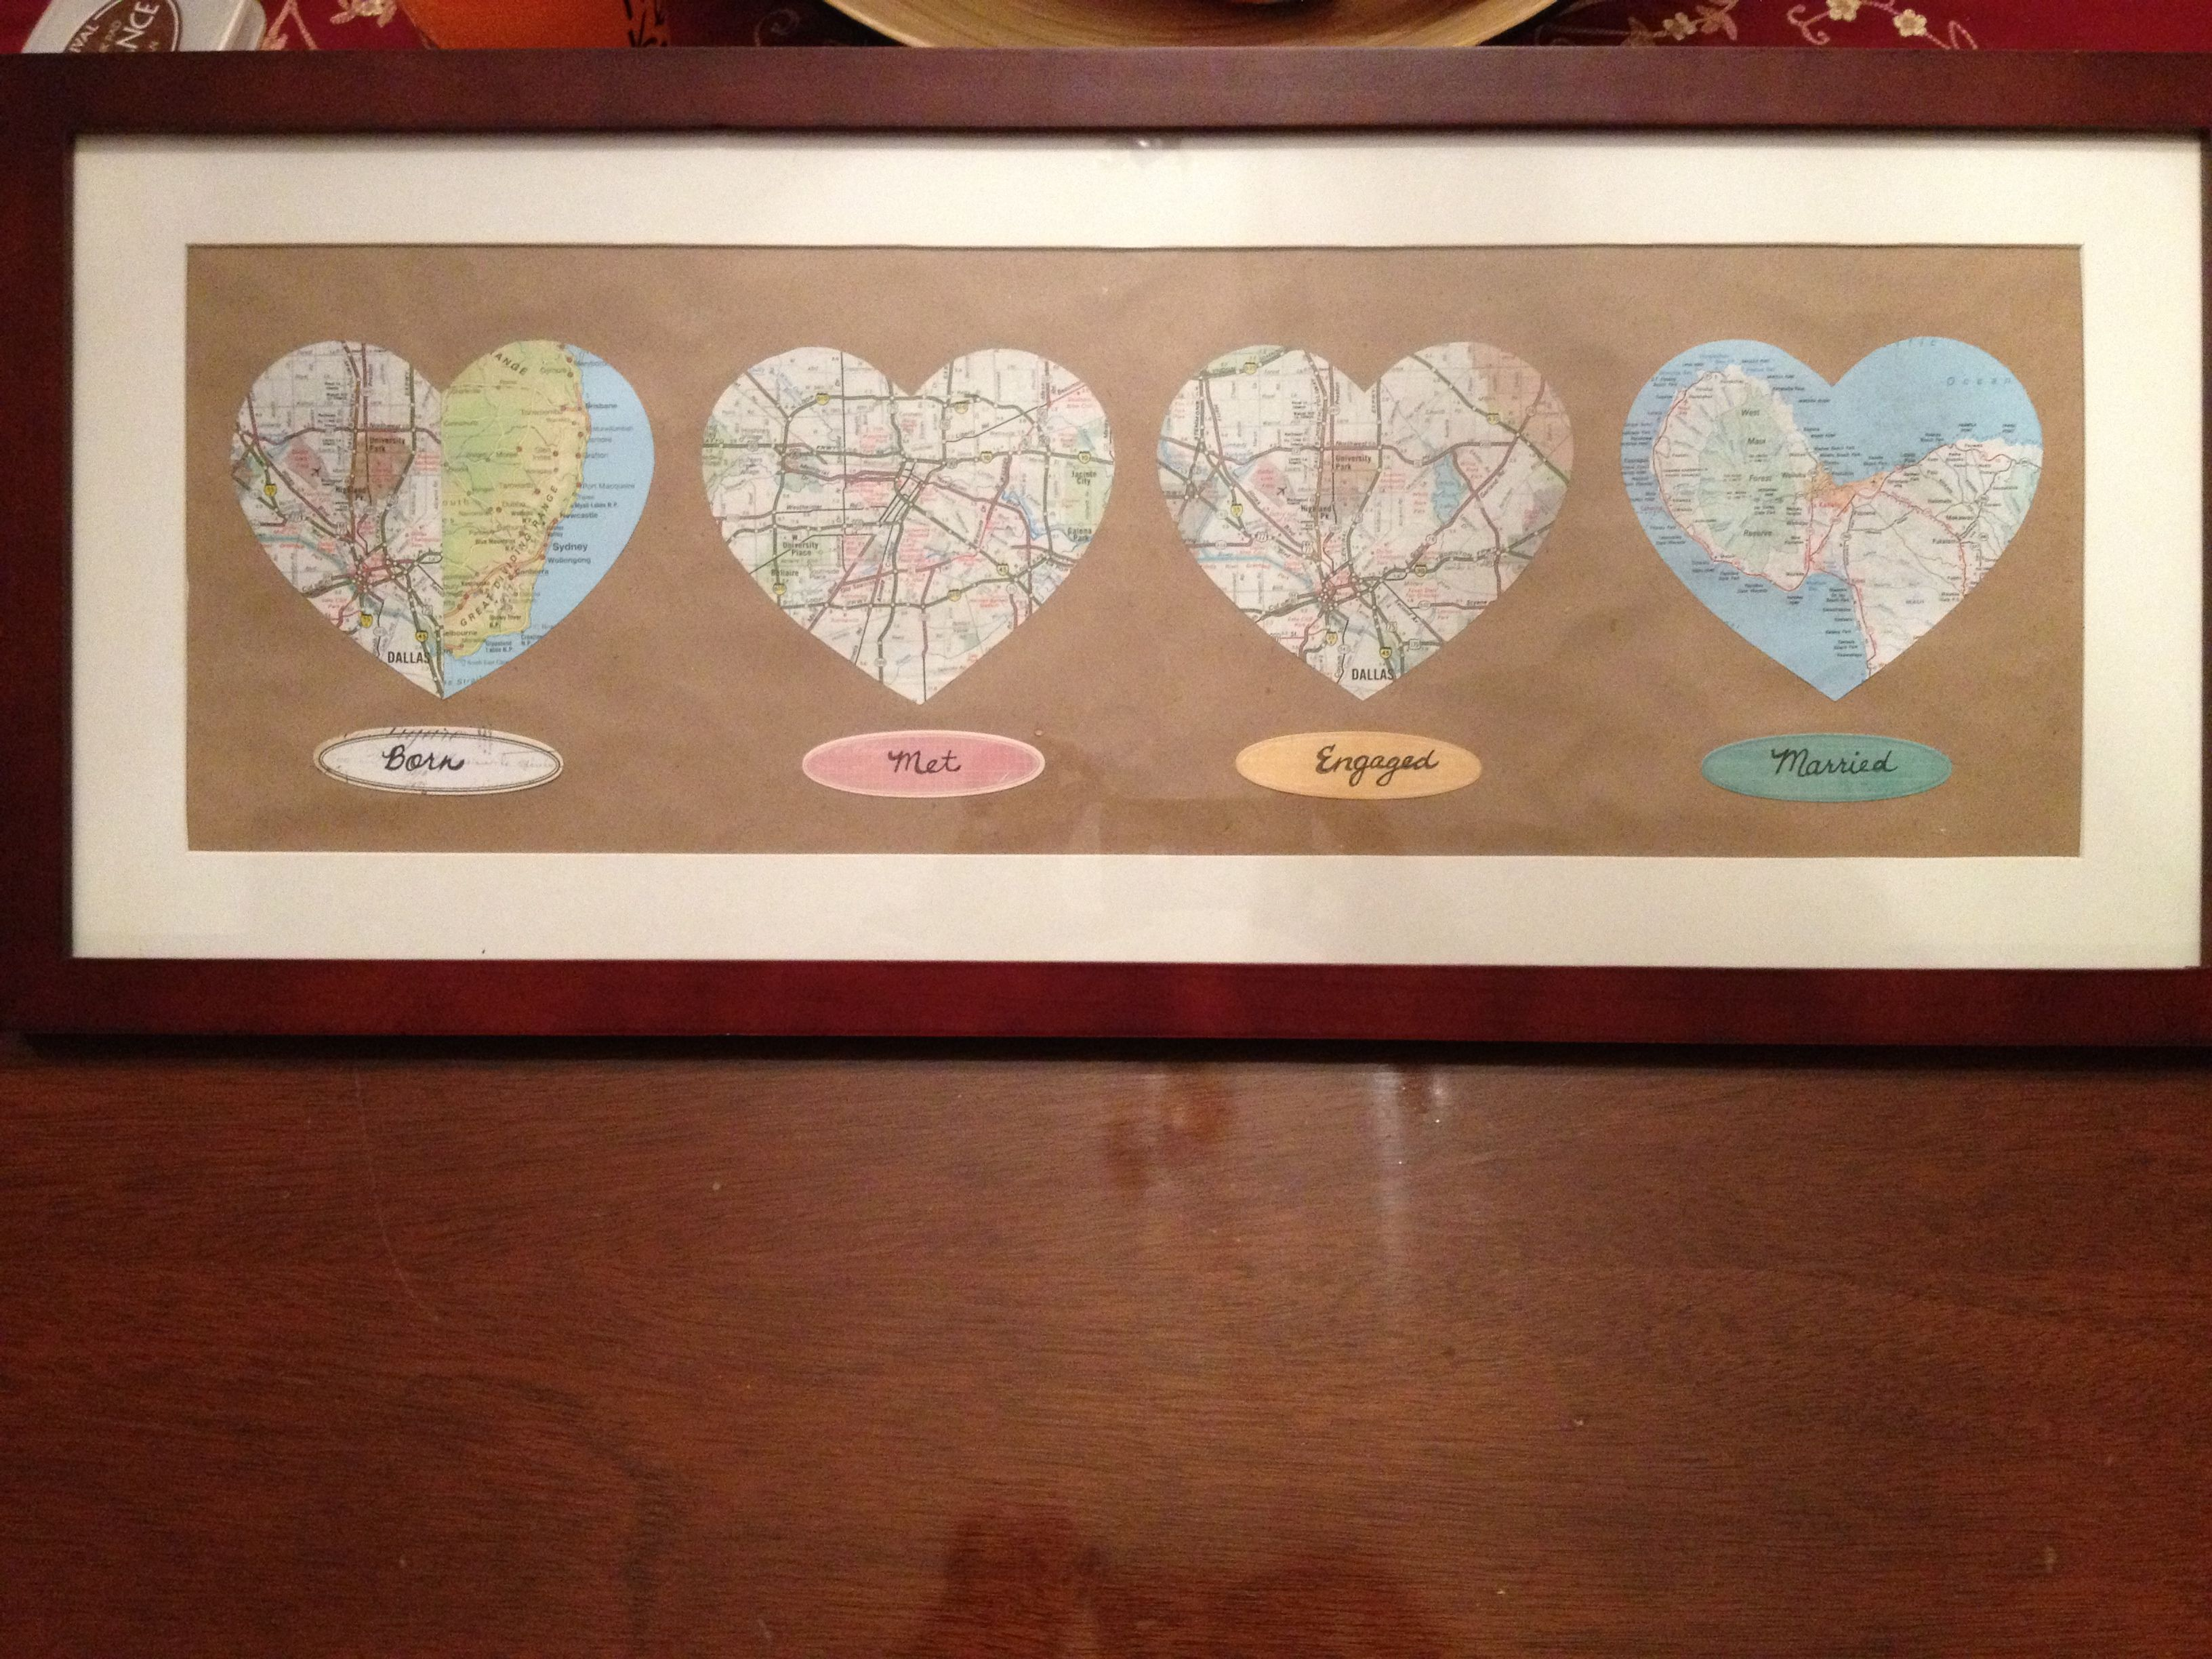 Handmade Wedding Gifts For Bride And Groom: Born, Met, Engaged, Married Map Cutouts For The Bride